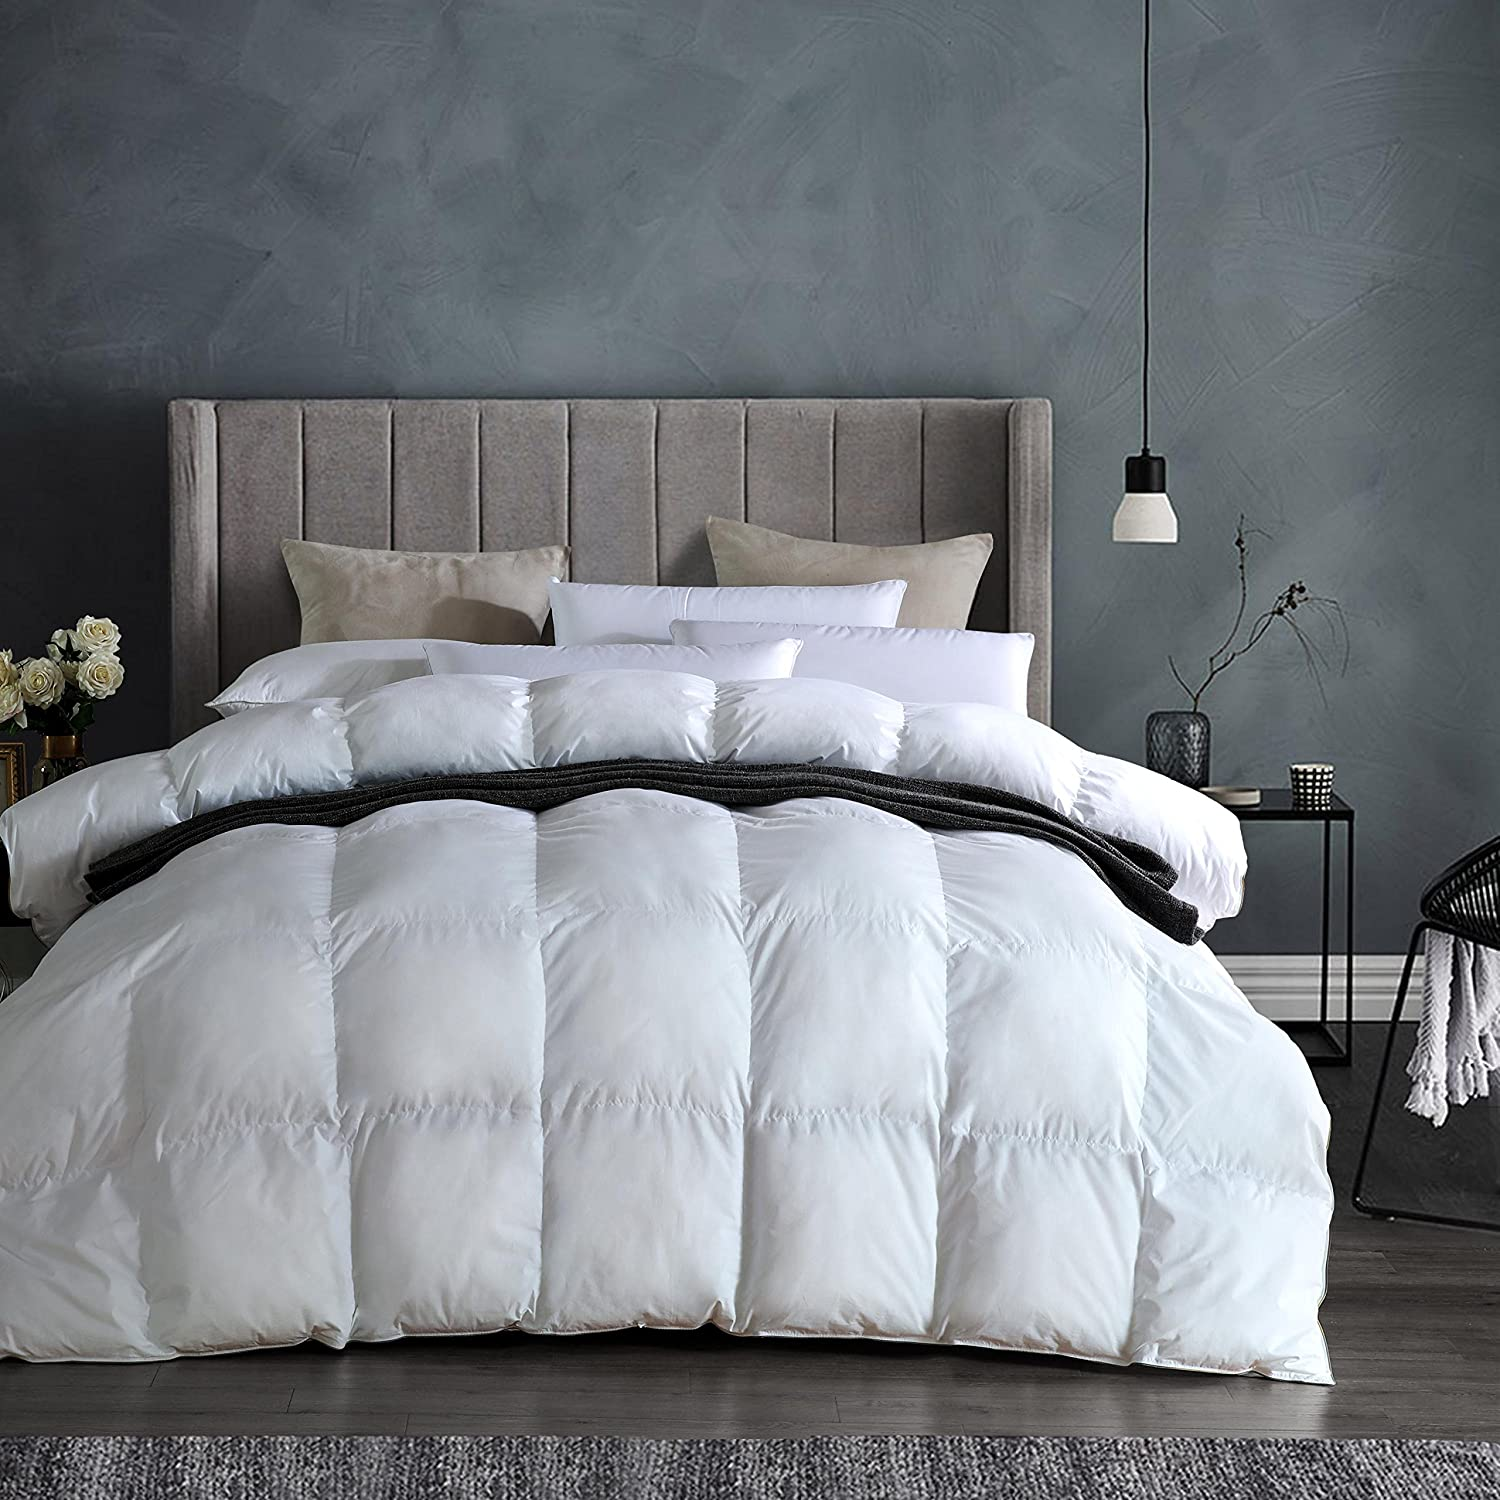 PALAWRAN Luxurious White Goose Down Comforter King Size Duvet Insert 1200 Thread Count Hypoallergenic 100% Egyptian Cotton Cover 750+ Fill Power 50 oz Fill Weight for All Seasons Cozy & Warm